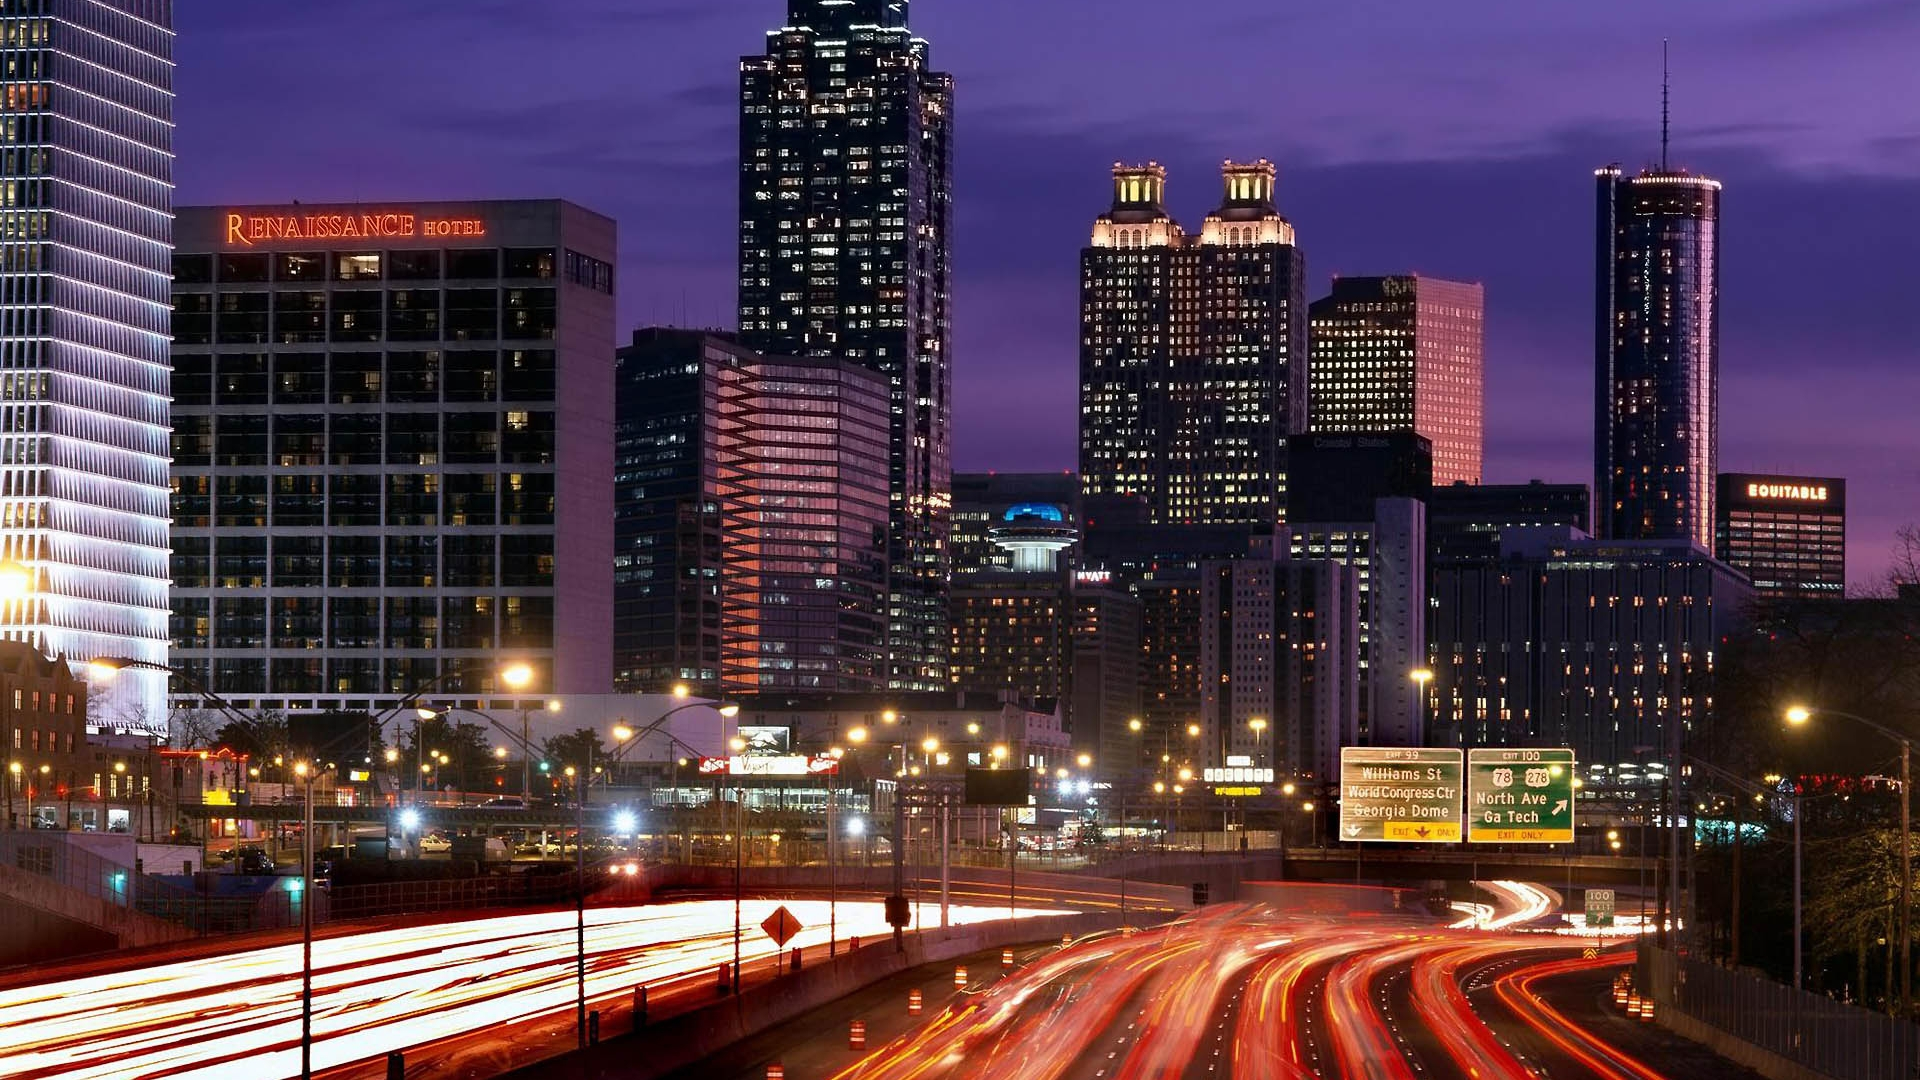 Cool Wallpaper Night Cities - Atlanta-Skyline-Timelapse-at-Night  Photograph.jpg